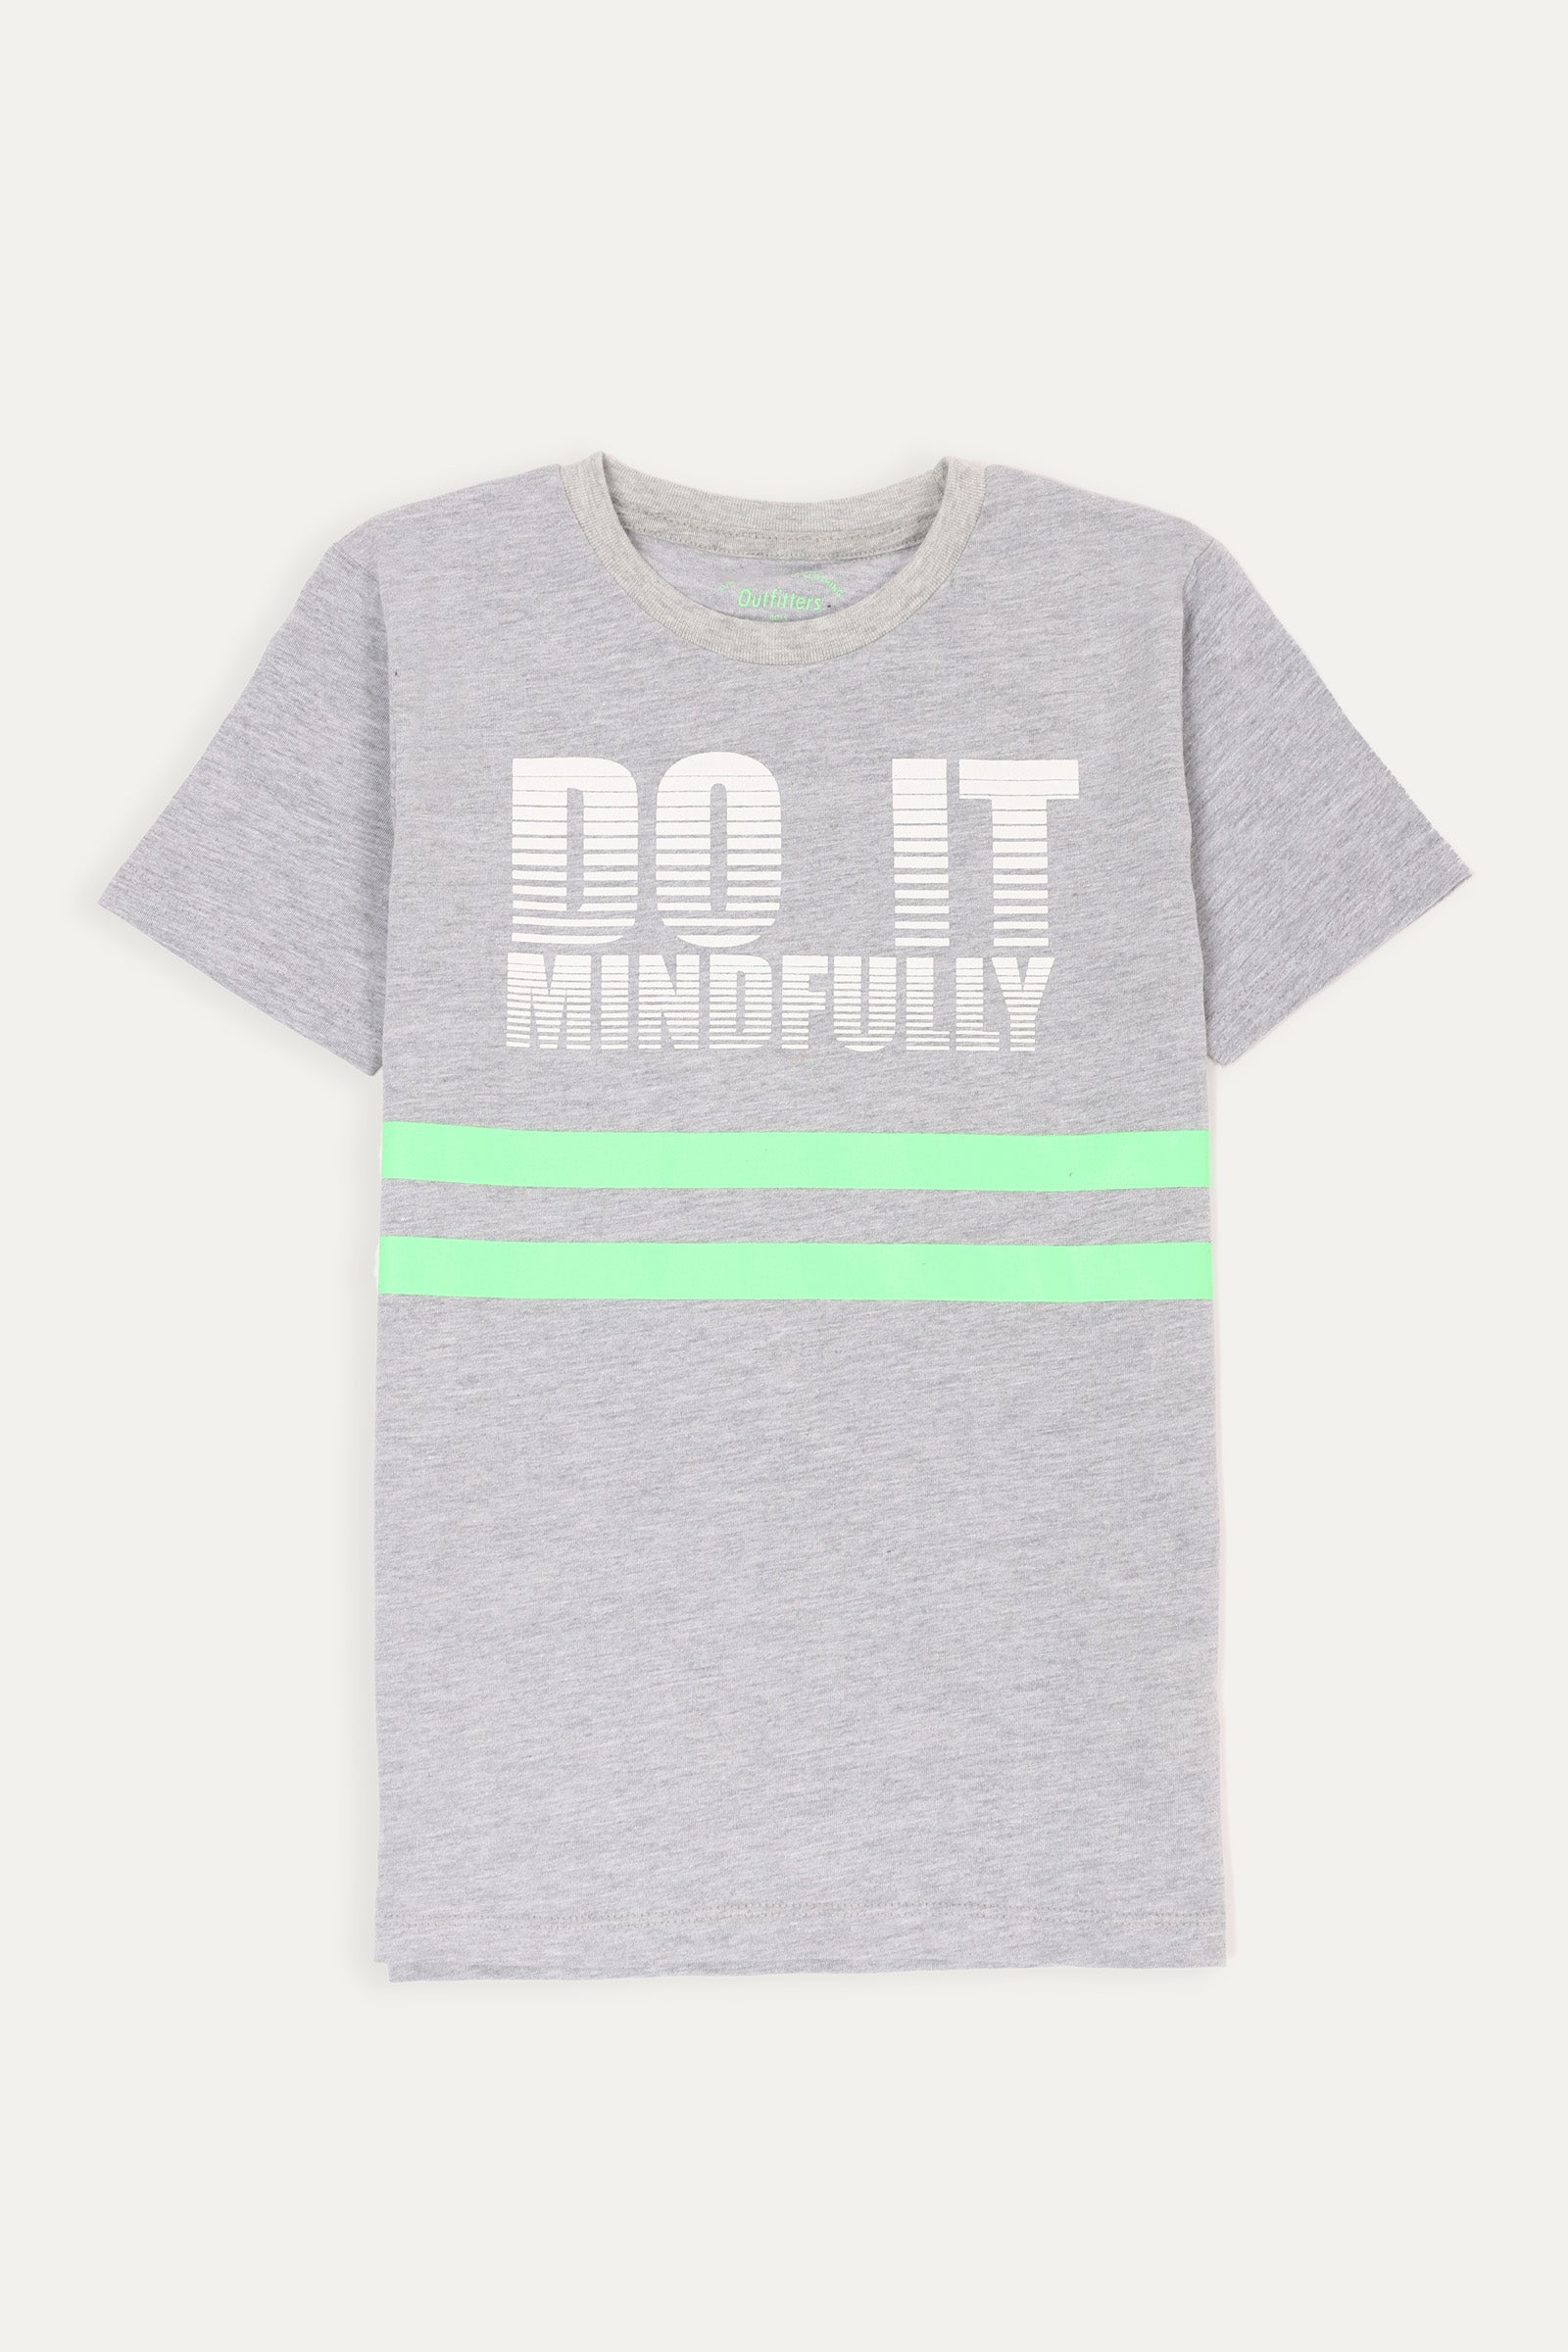 Do It Mindfully' T-shirt